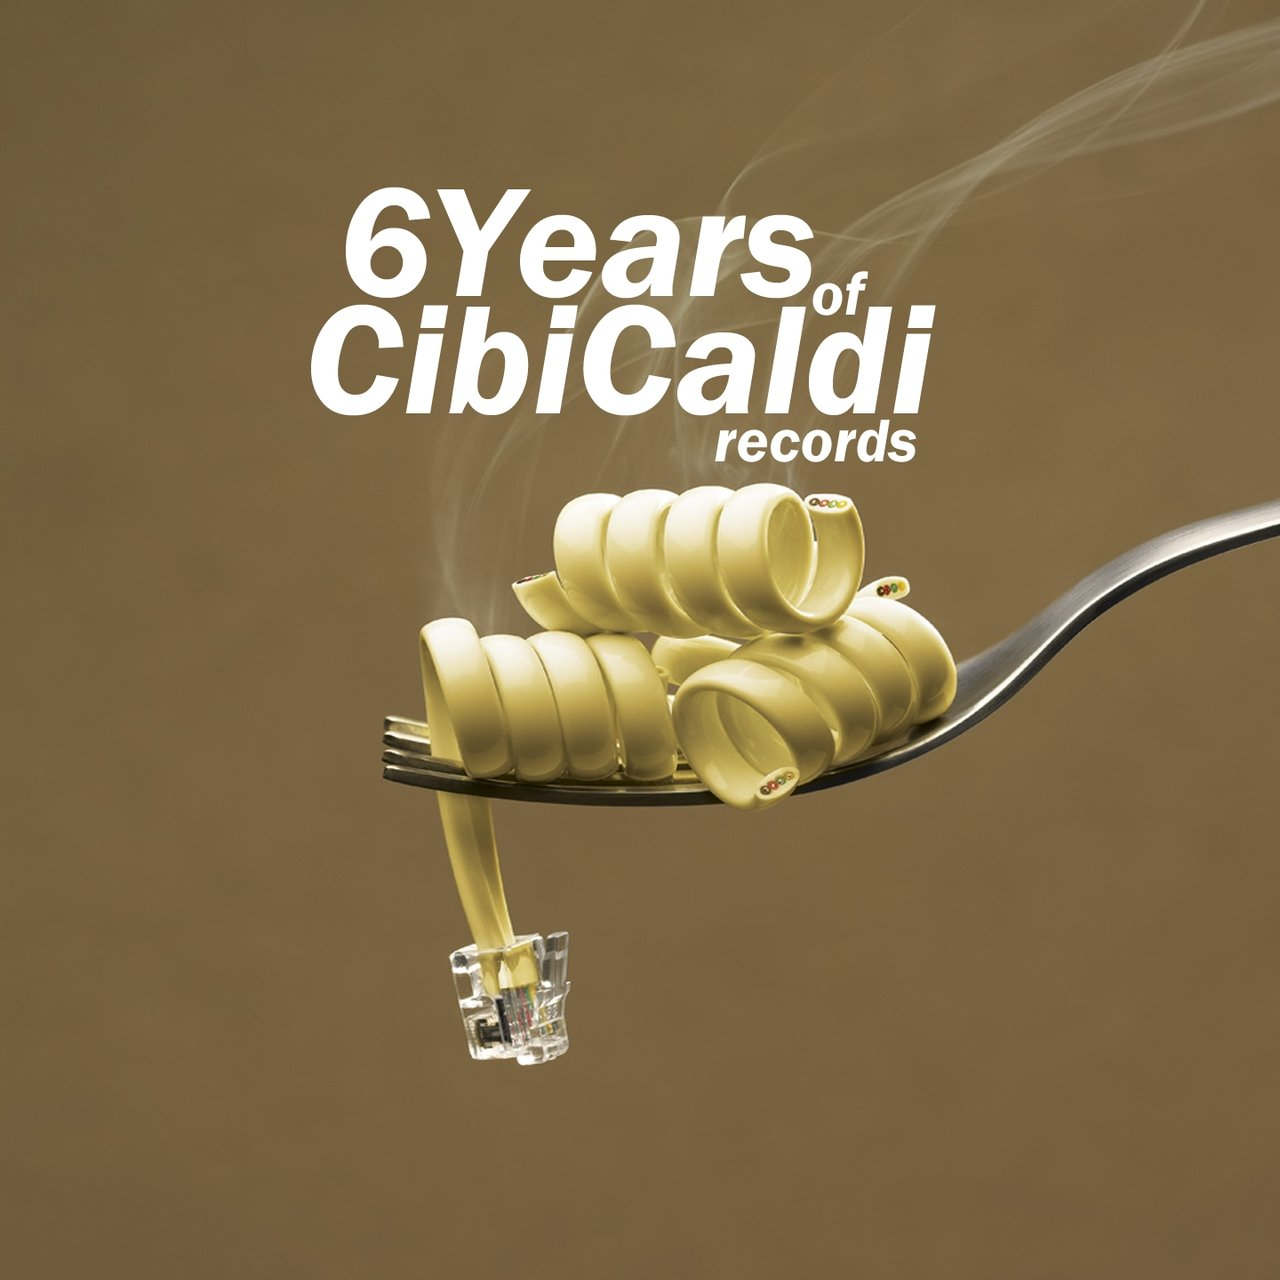 6 Years of CibiCaldi Records